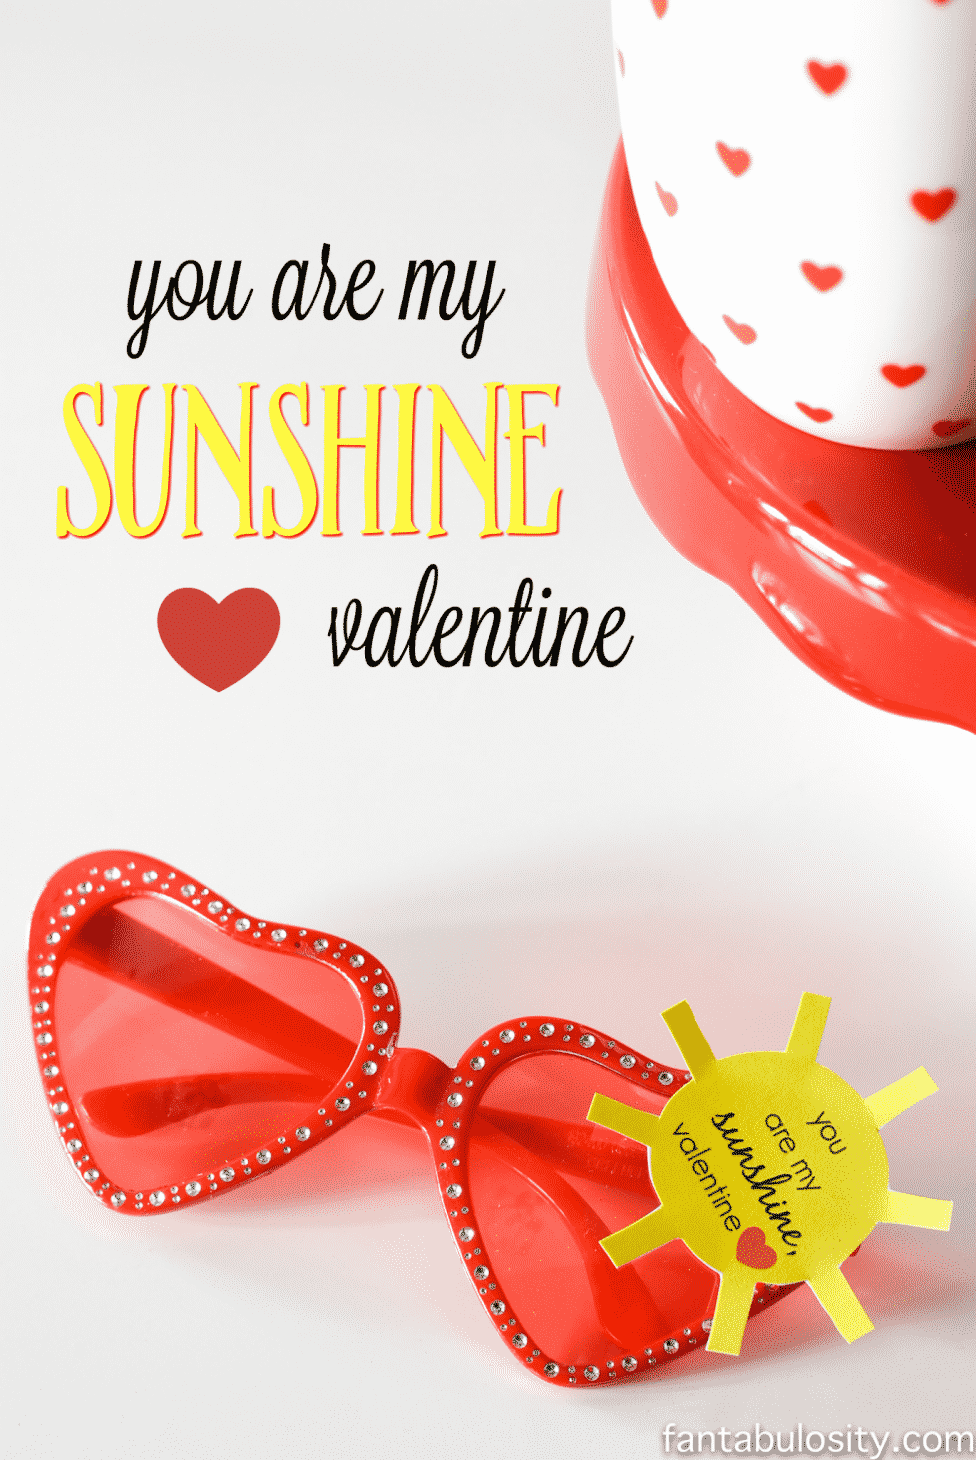 "CLASSROOM VALENTINES WITH FREE PRINTABLE! ""You are my Sunshine Valentine"" Heart Sunglasses, Valentines for Classroom or classmates for preschool; non-candy, healthy idea https://fantabulosity.com"